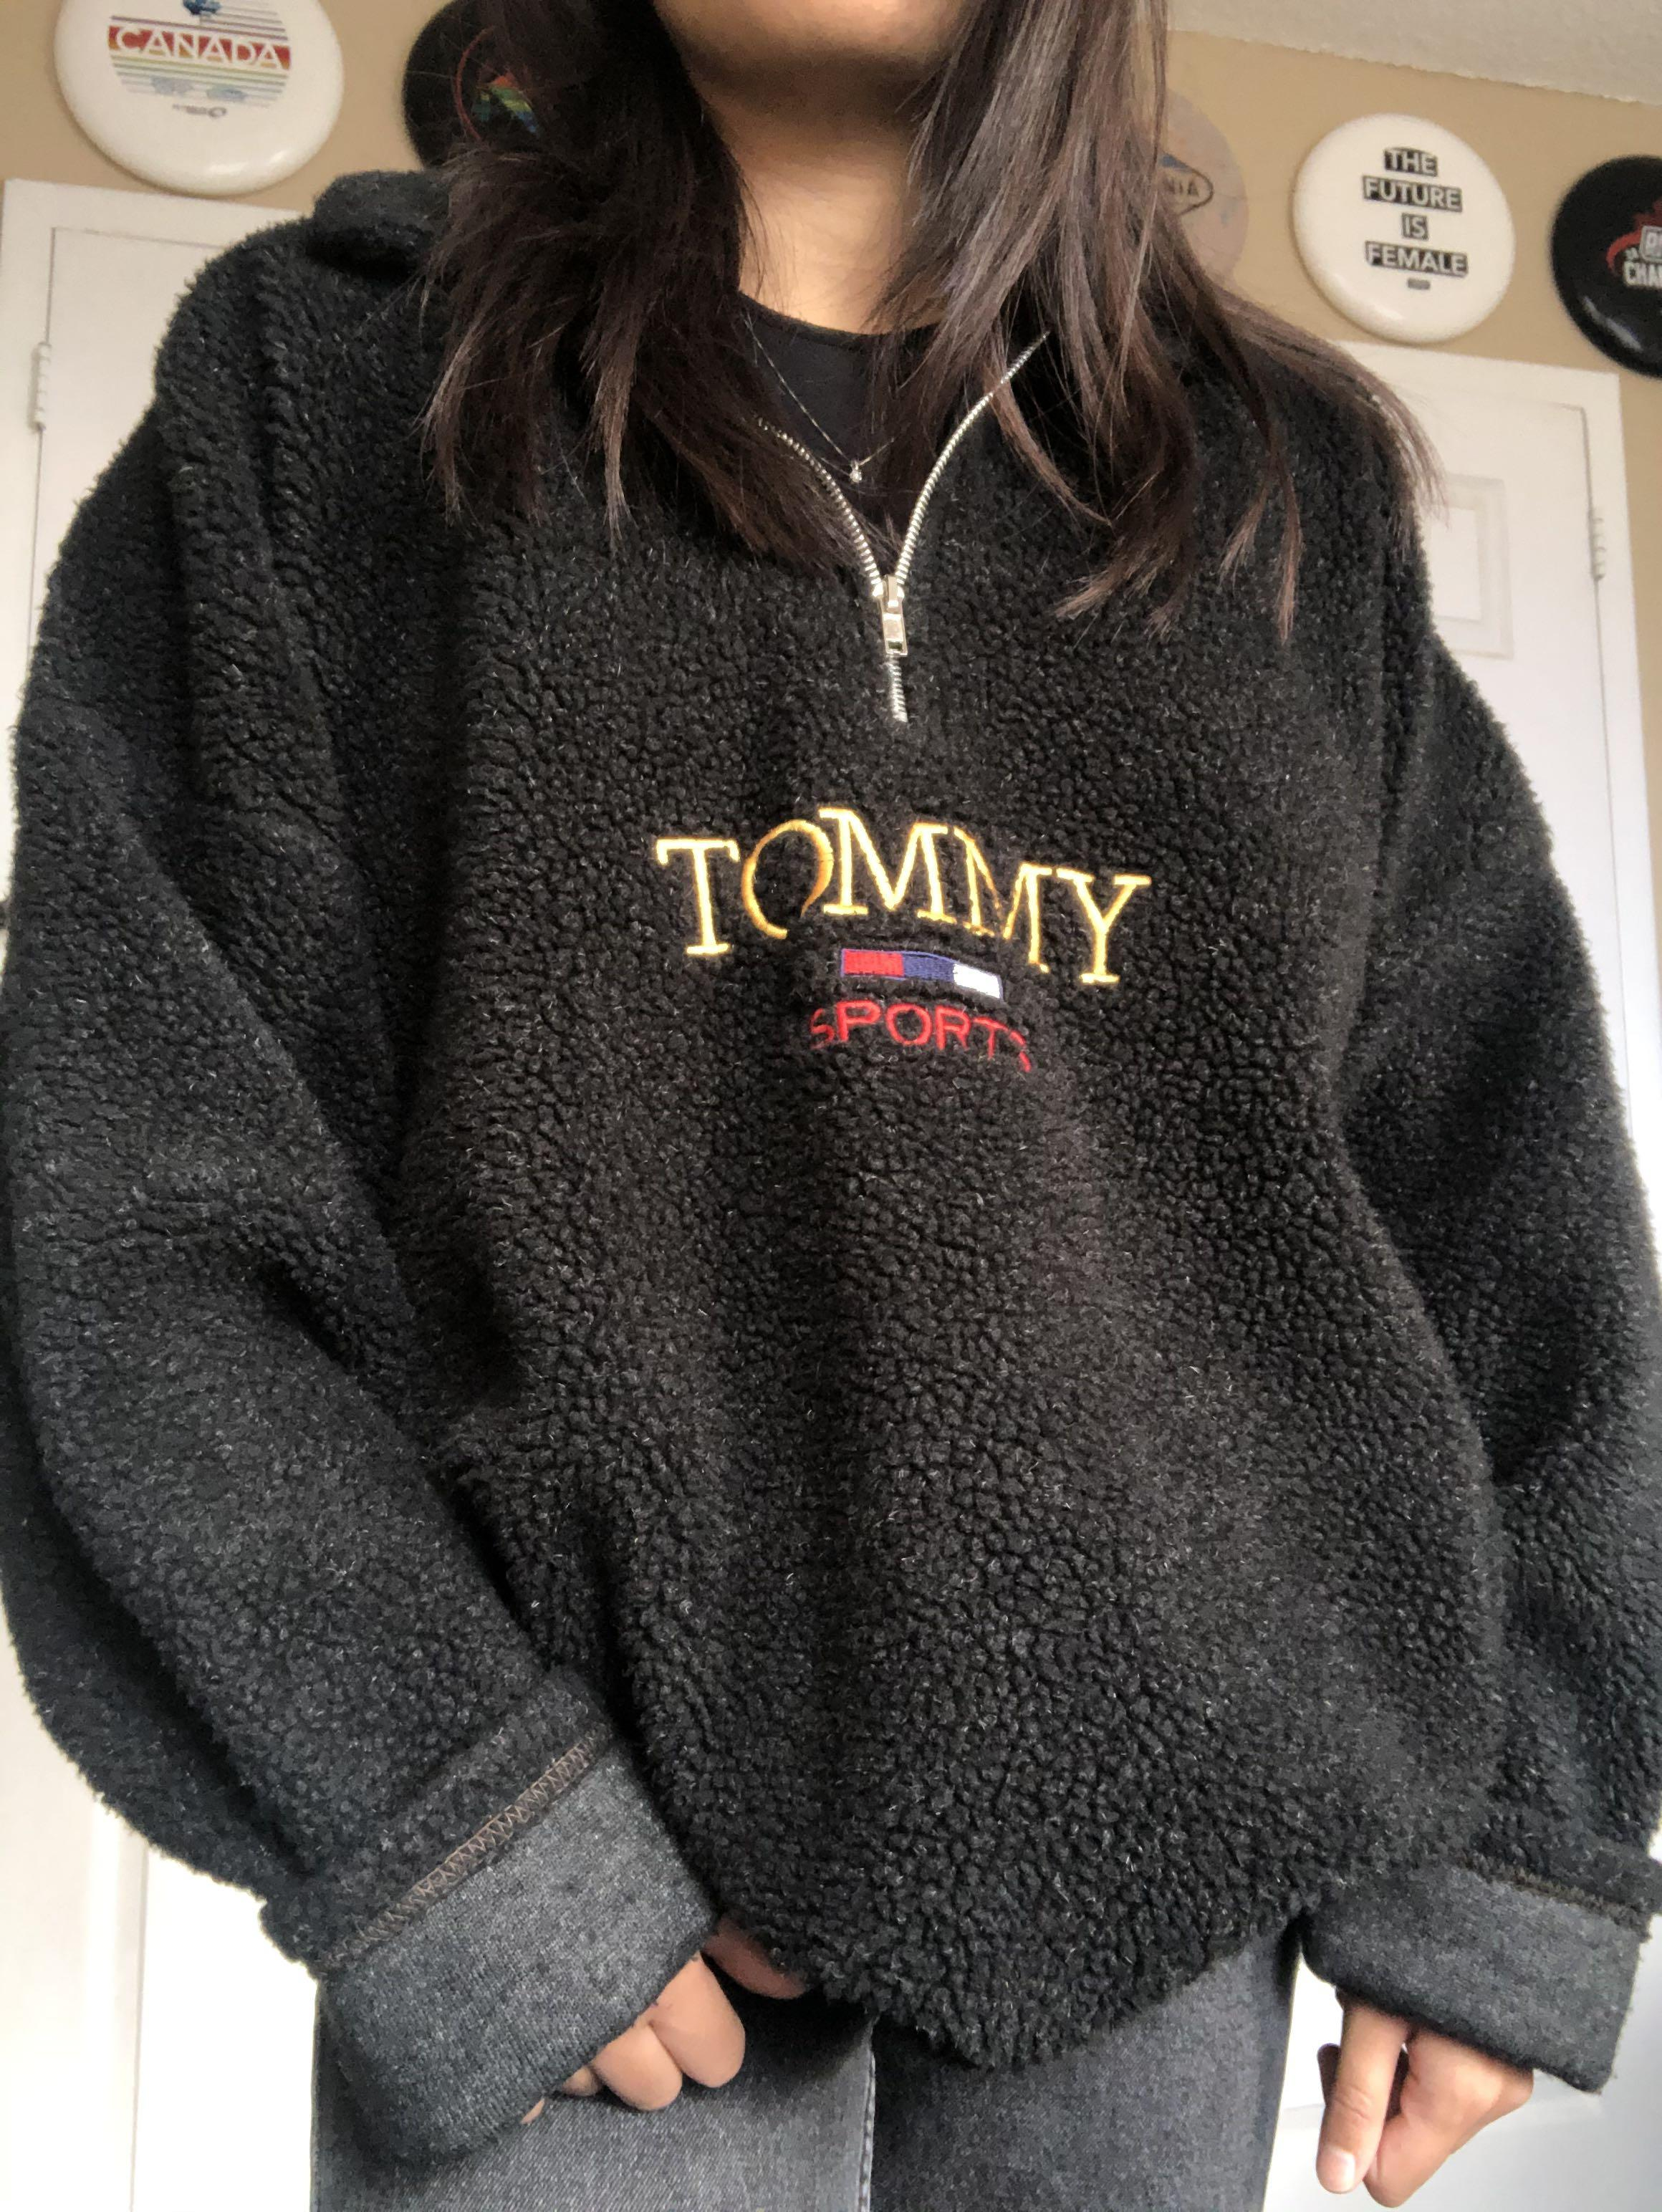 Tommy sherpa quarter zip sweater